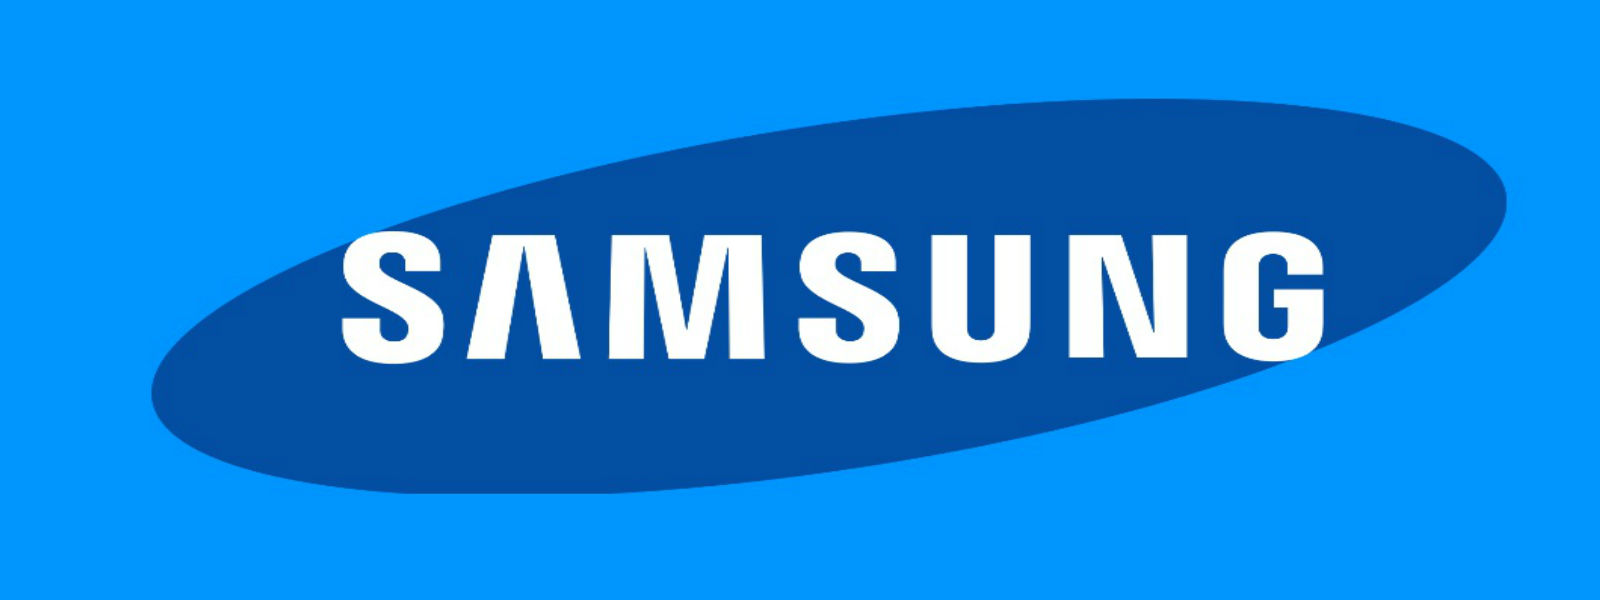 File footage of Samsung Electronics ahead of earnings guidance